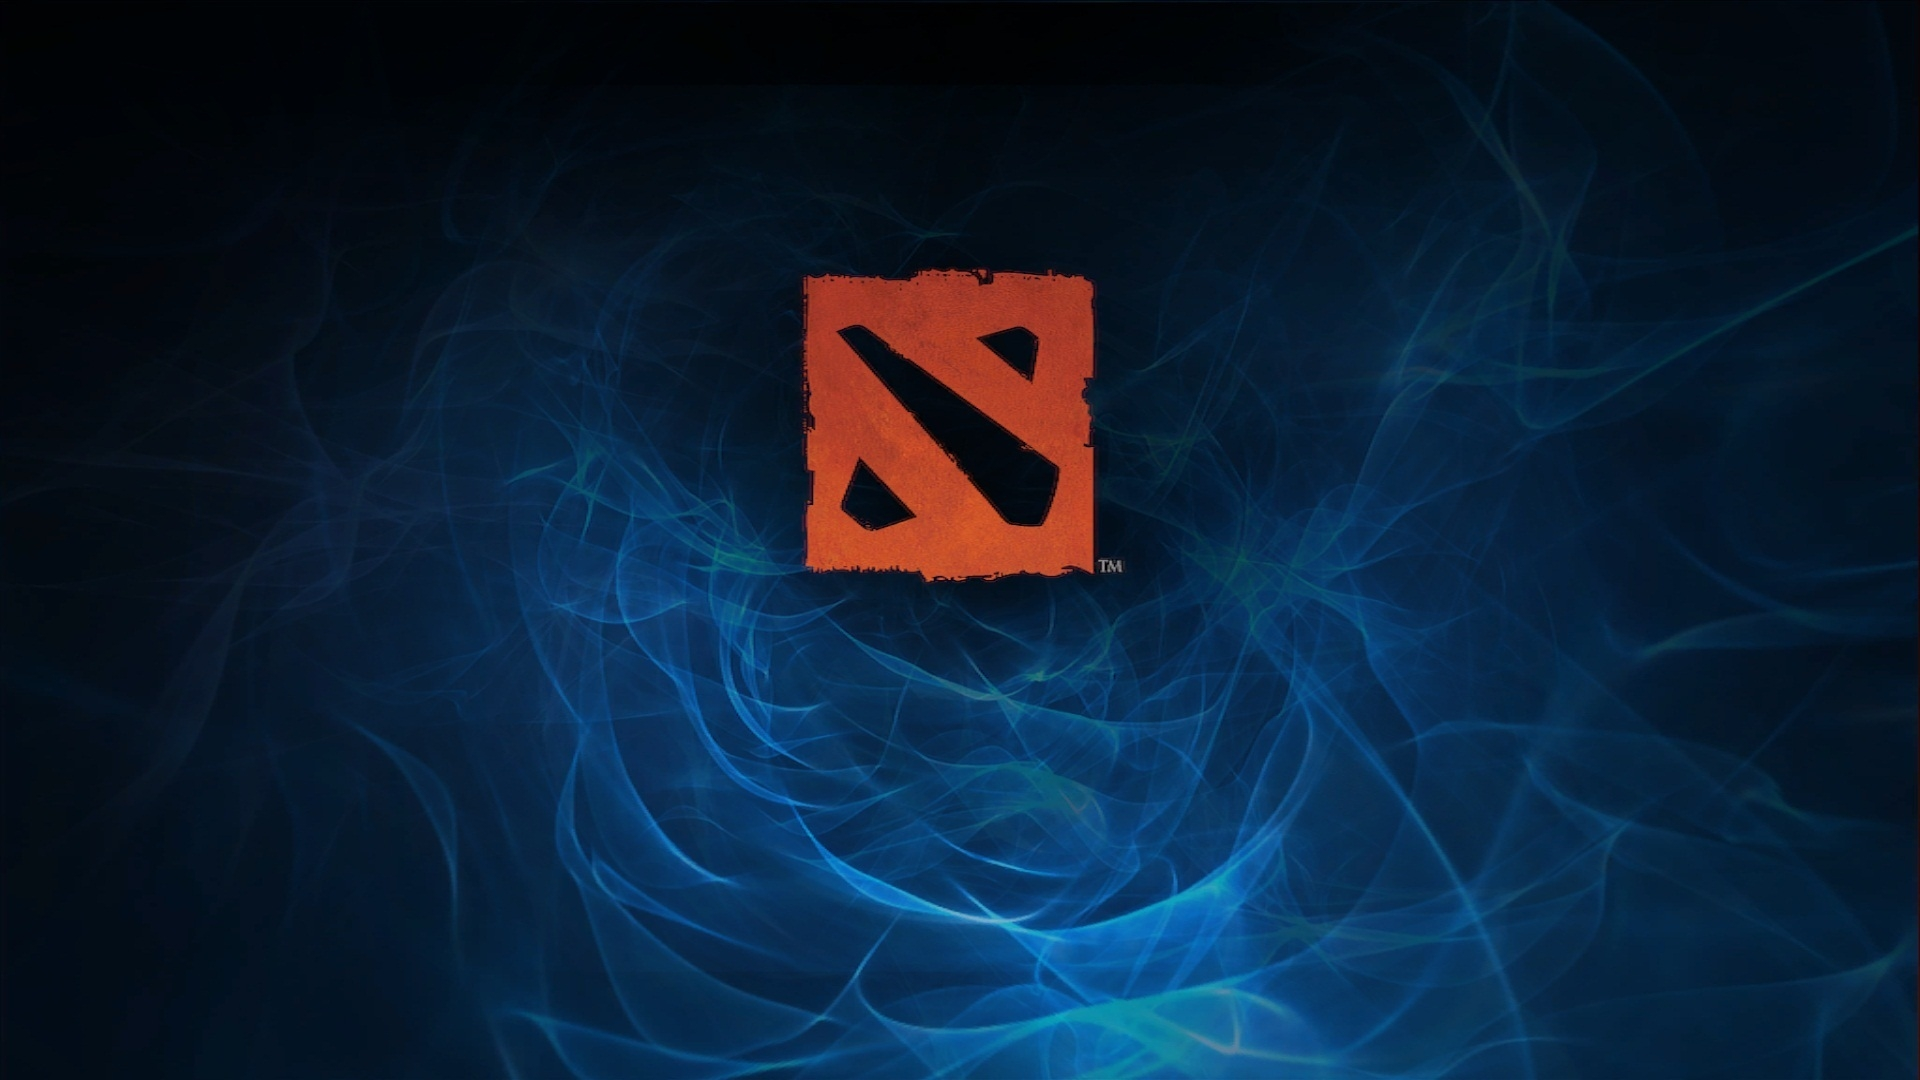 valve, dota, dota 2, best game in the world